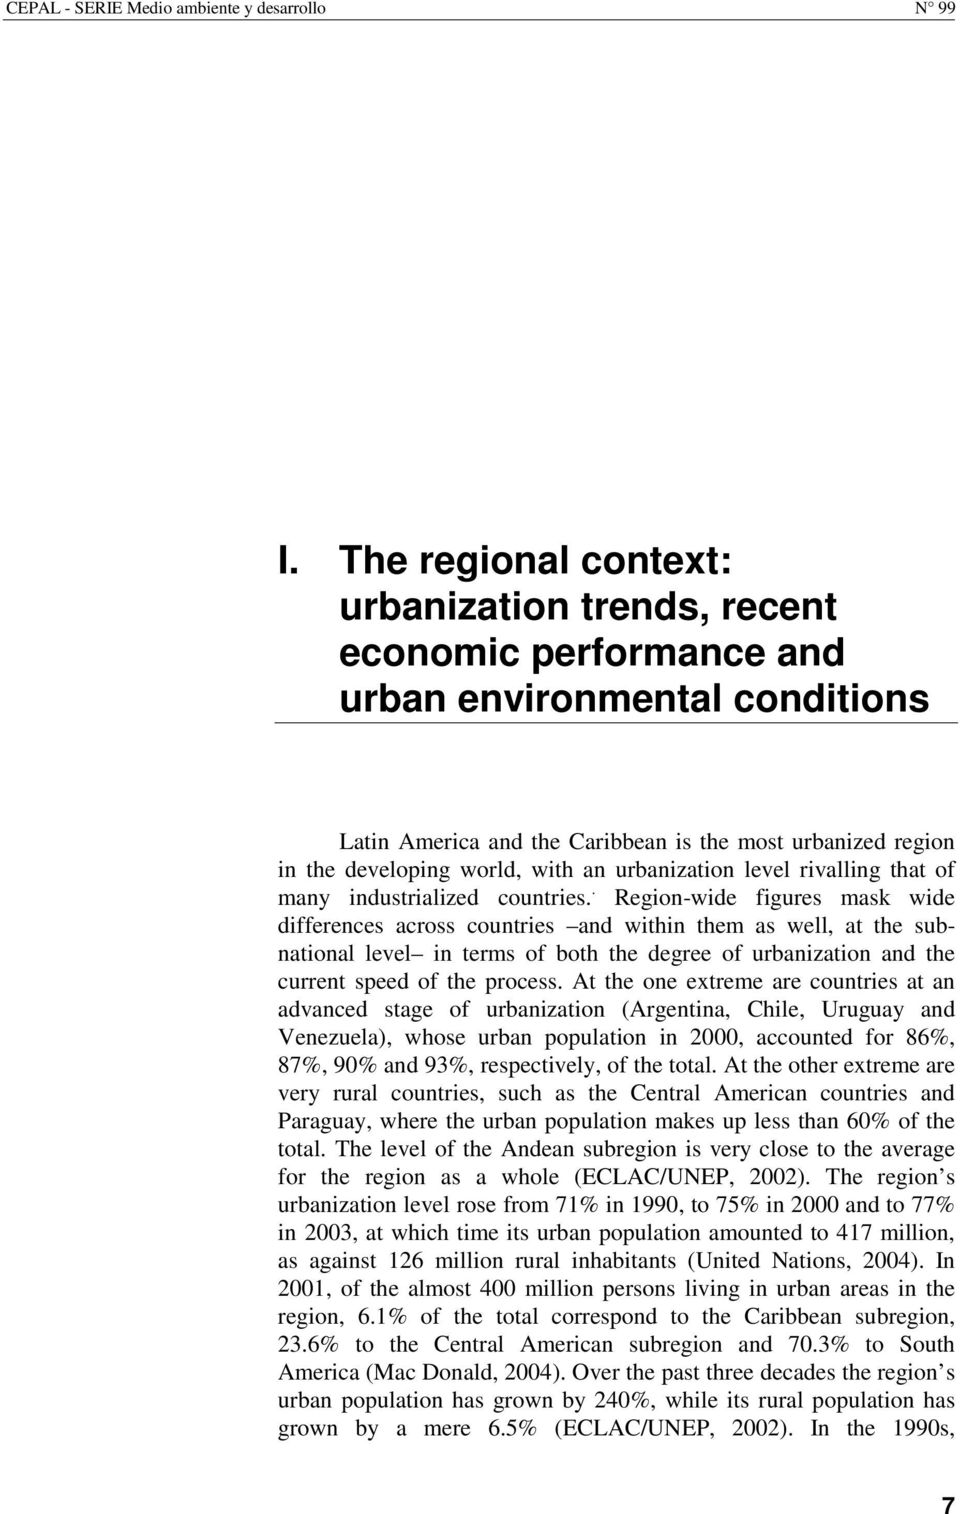 urbanization level rivalling that of many industrialized countries.